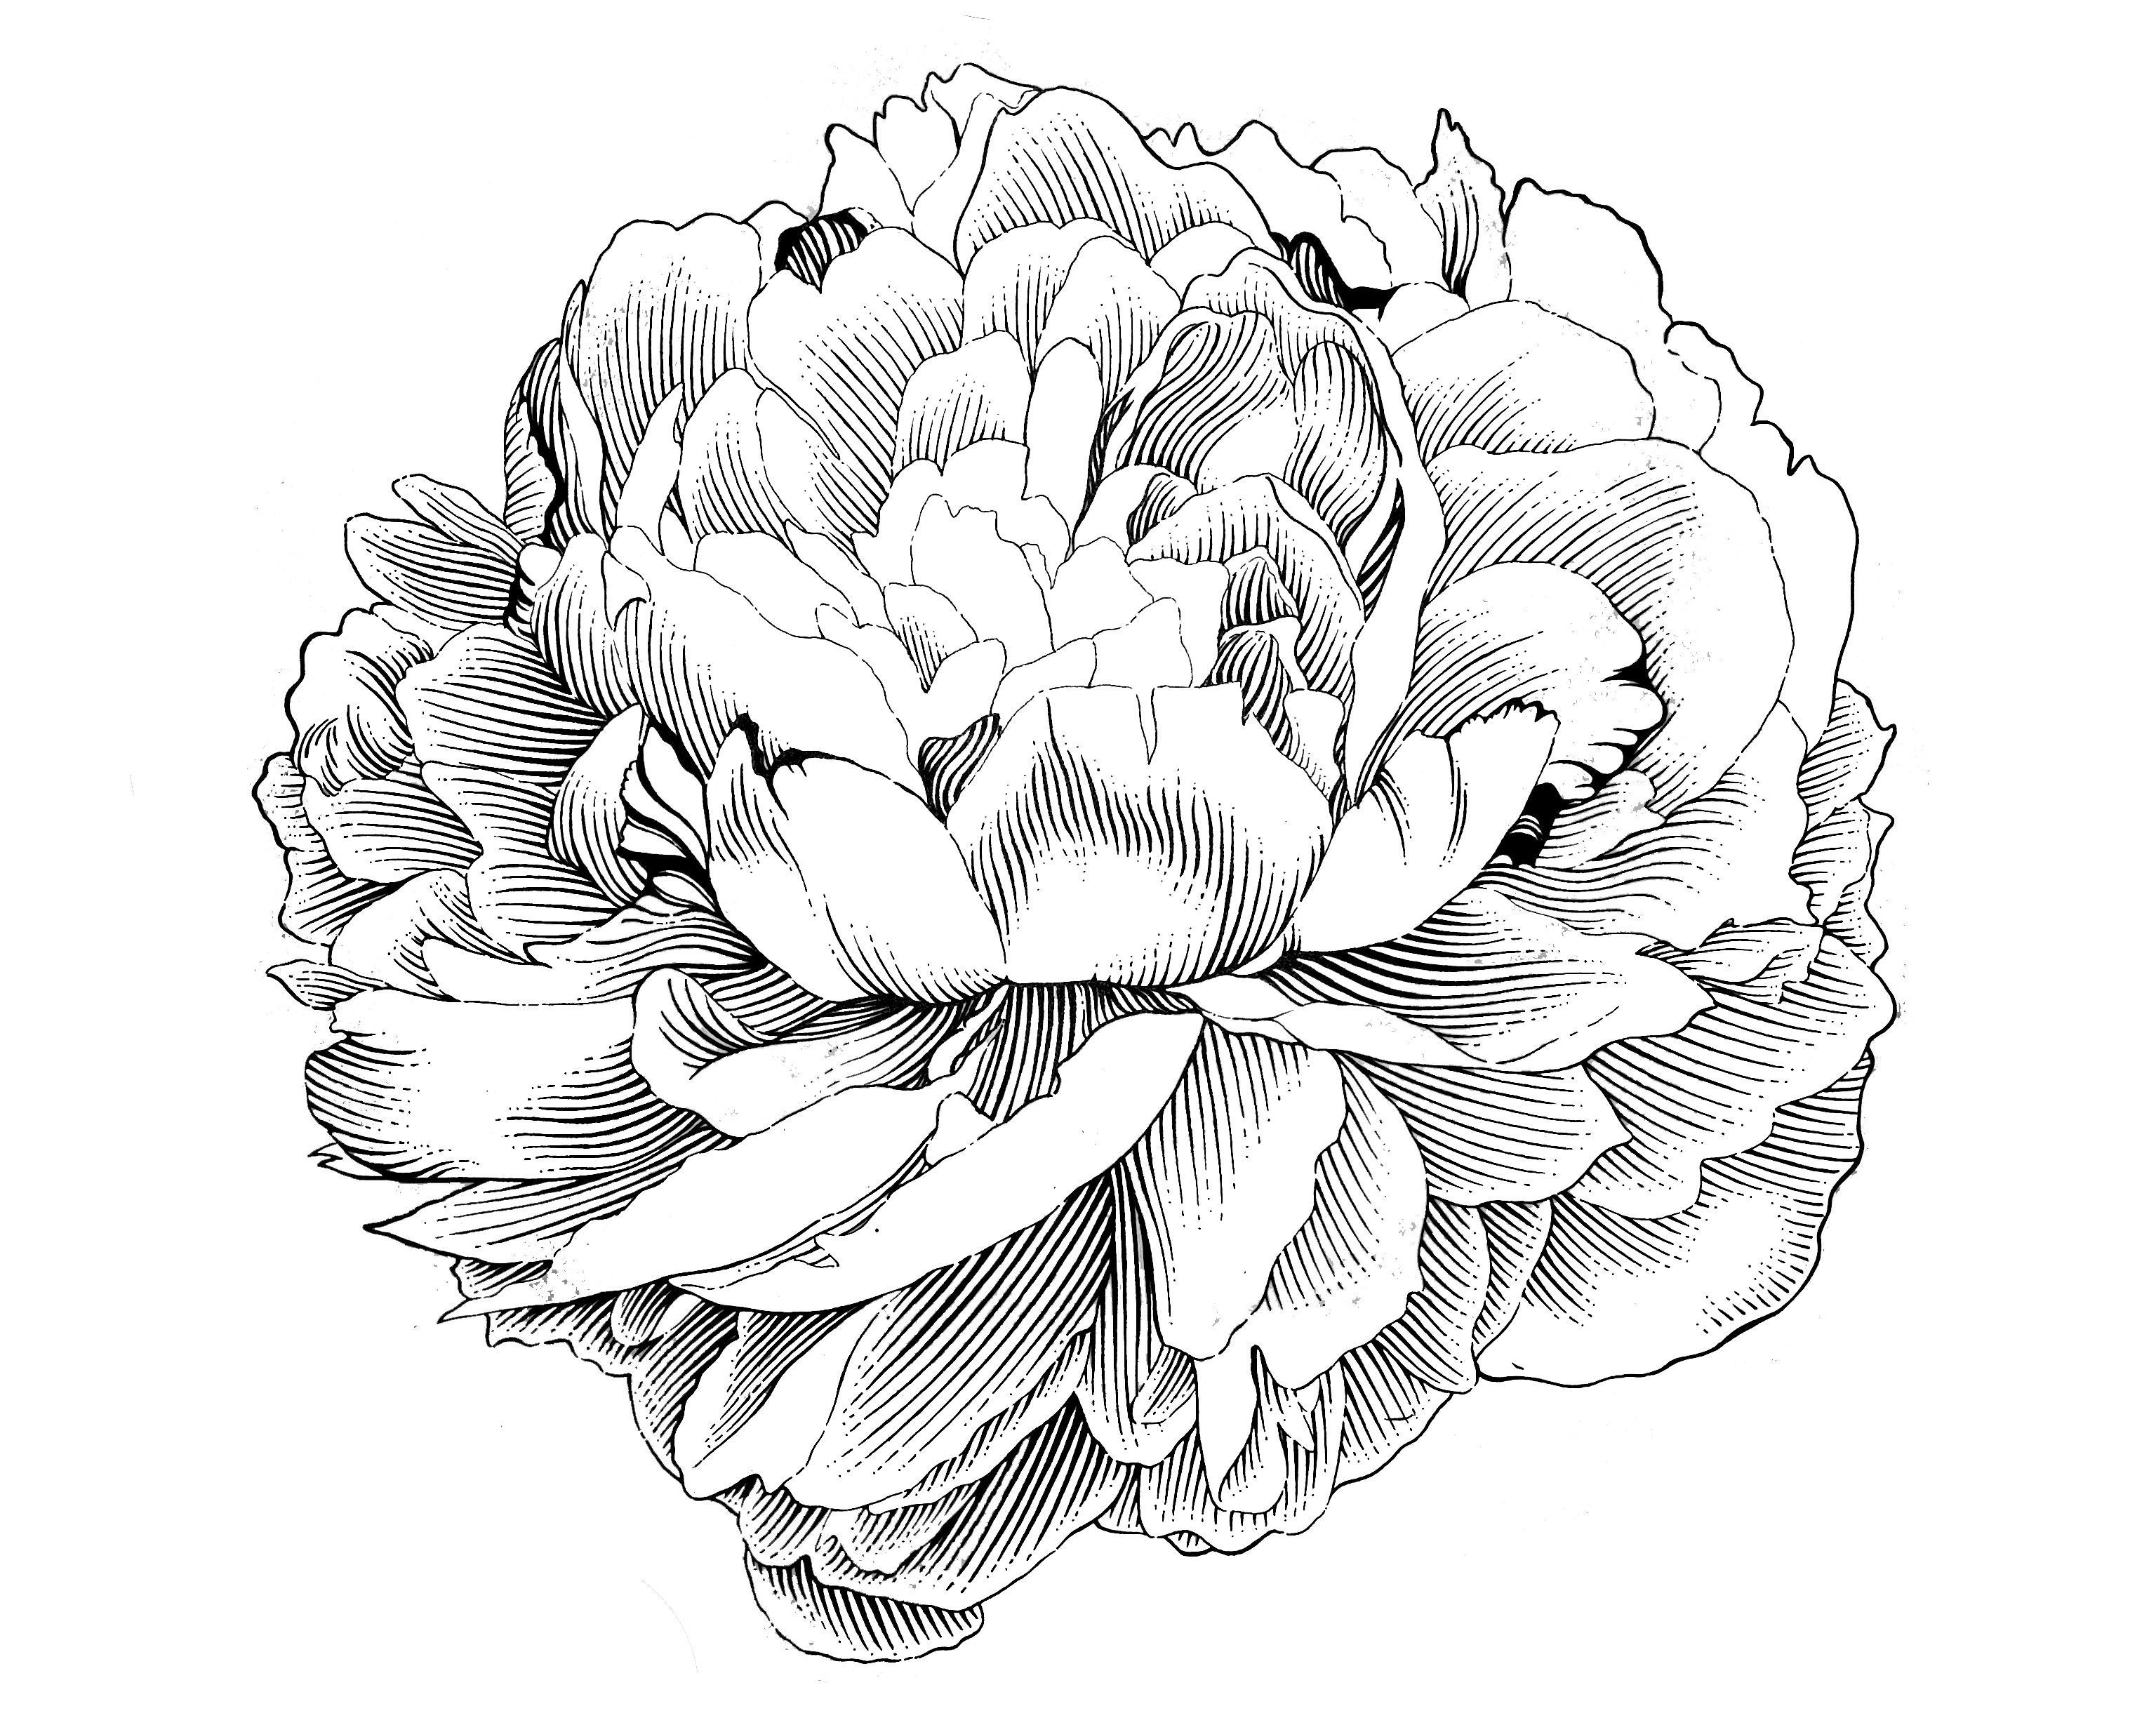 Drawn peony simple Illustration on com @deviantART deviantart